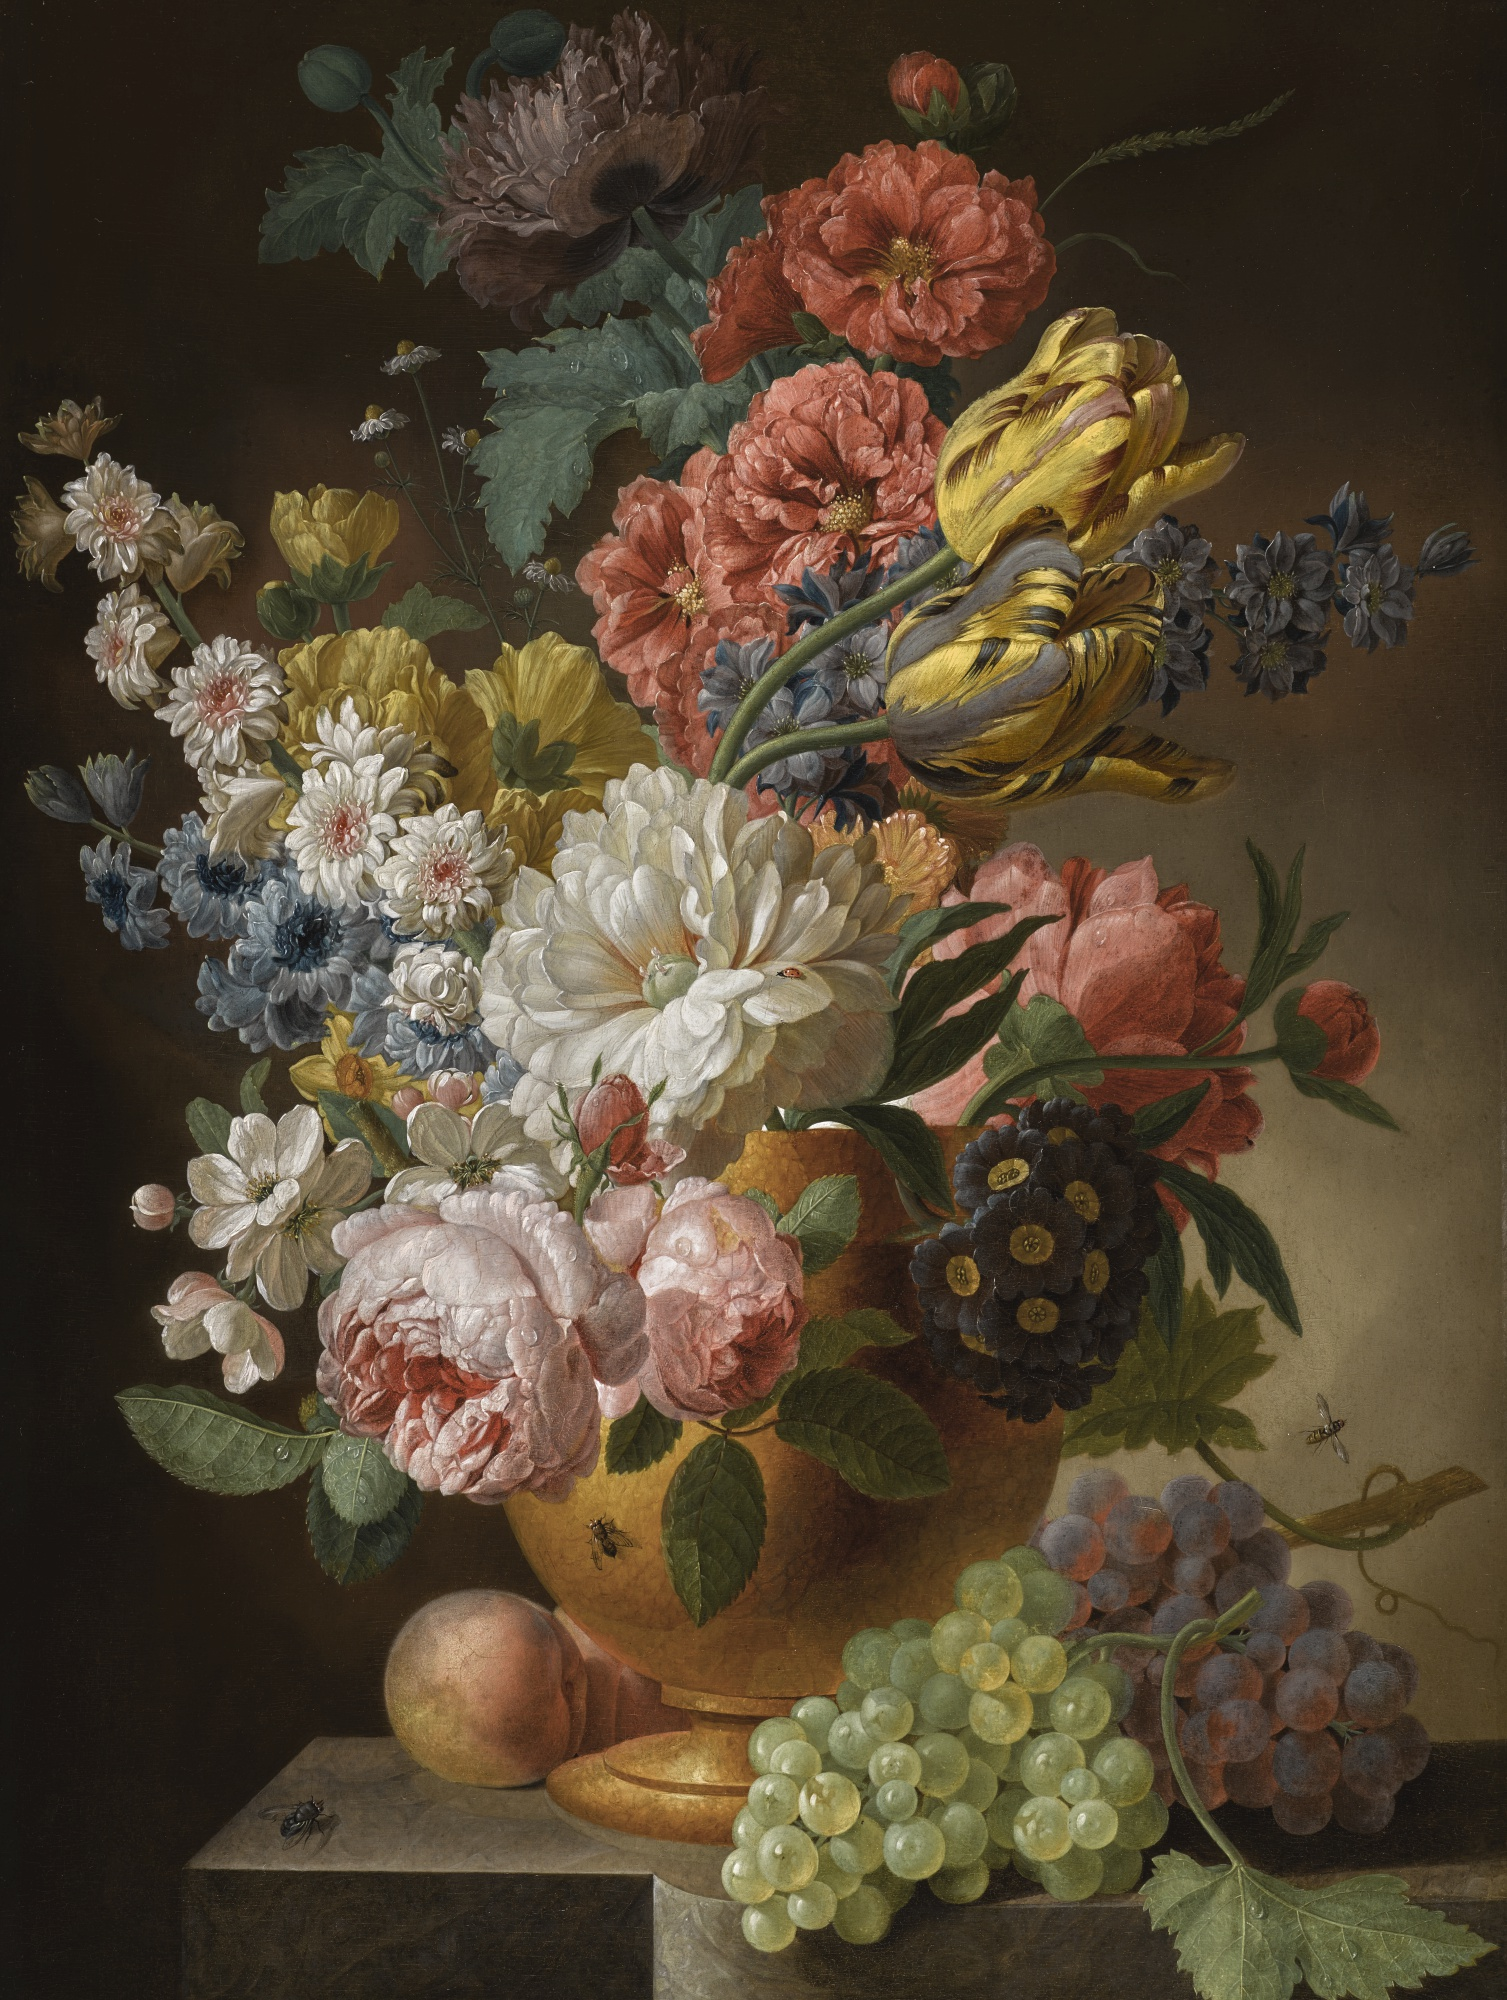 Still Life of Roses, Tulips, Carnations, and other Flowers, in an Urn on a Stone Ledge, with Peaches and Grapes, by Pieter Faes